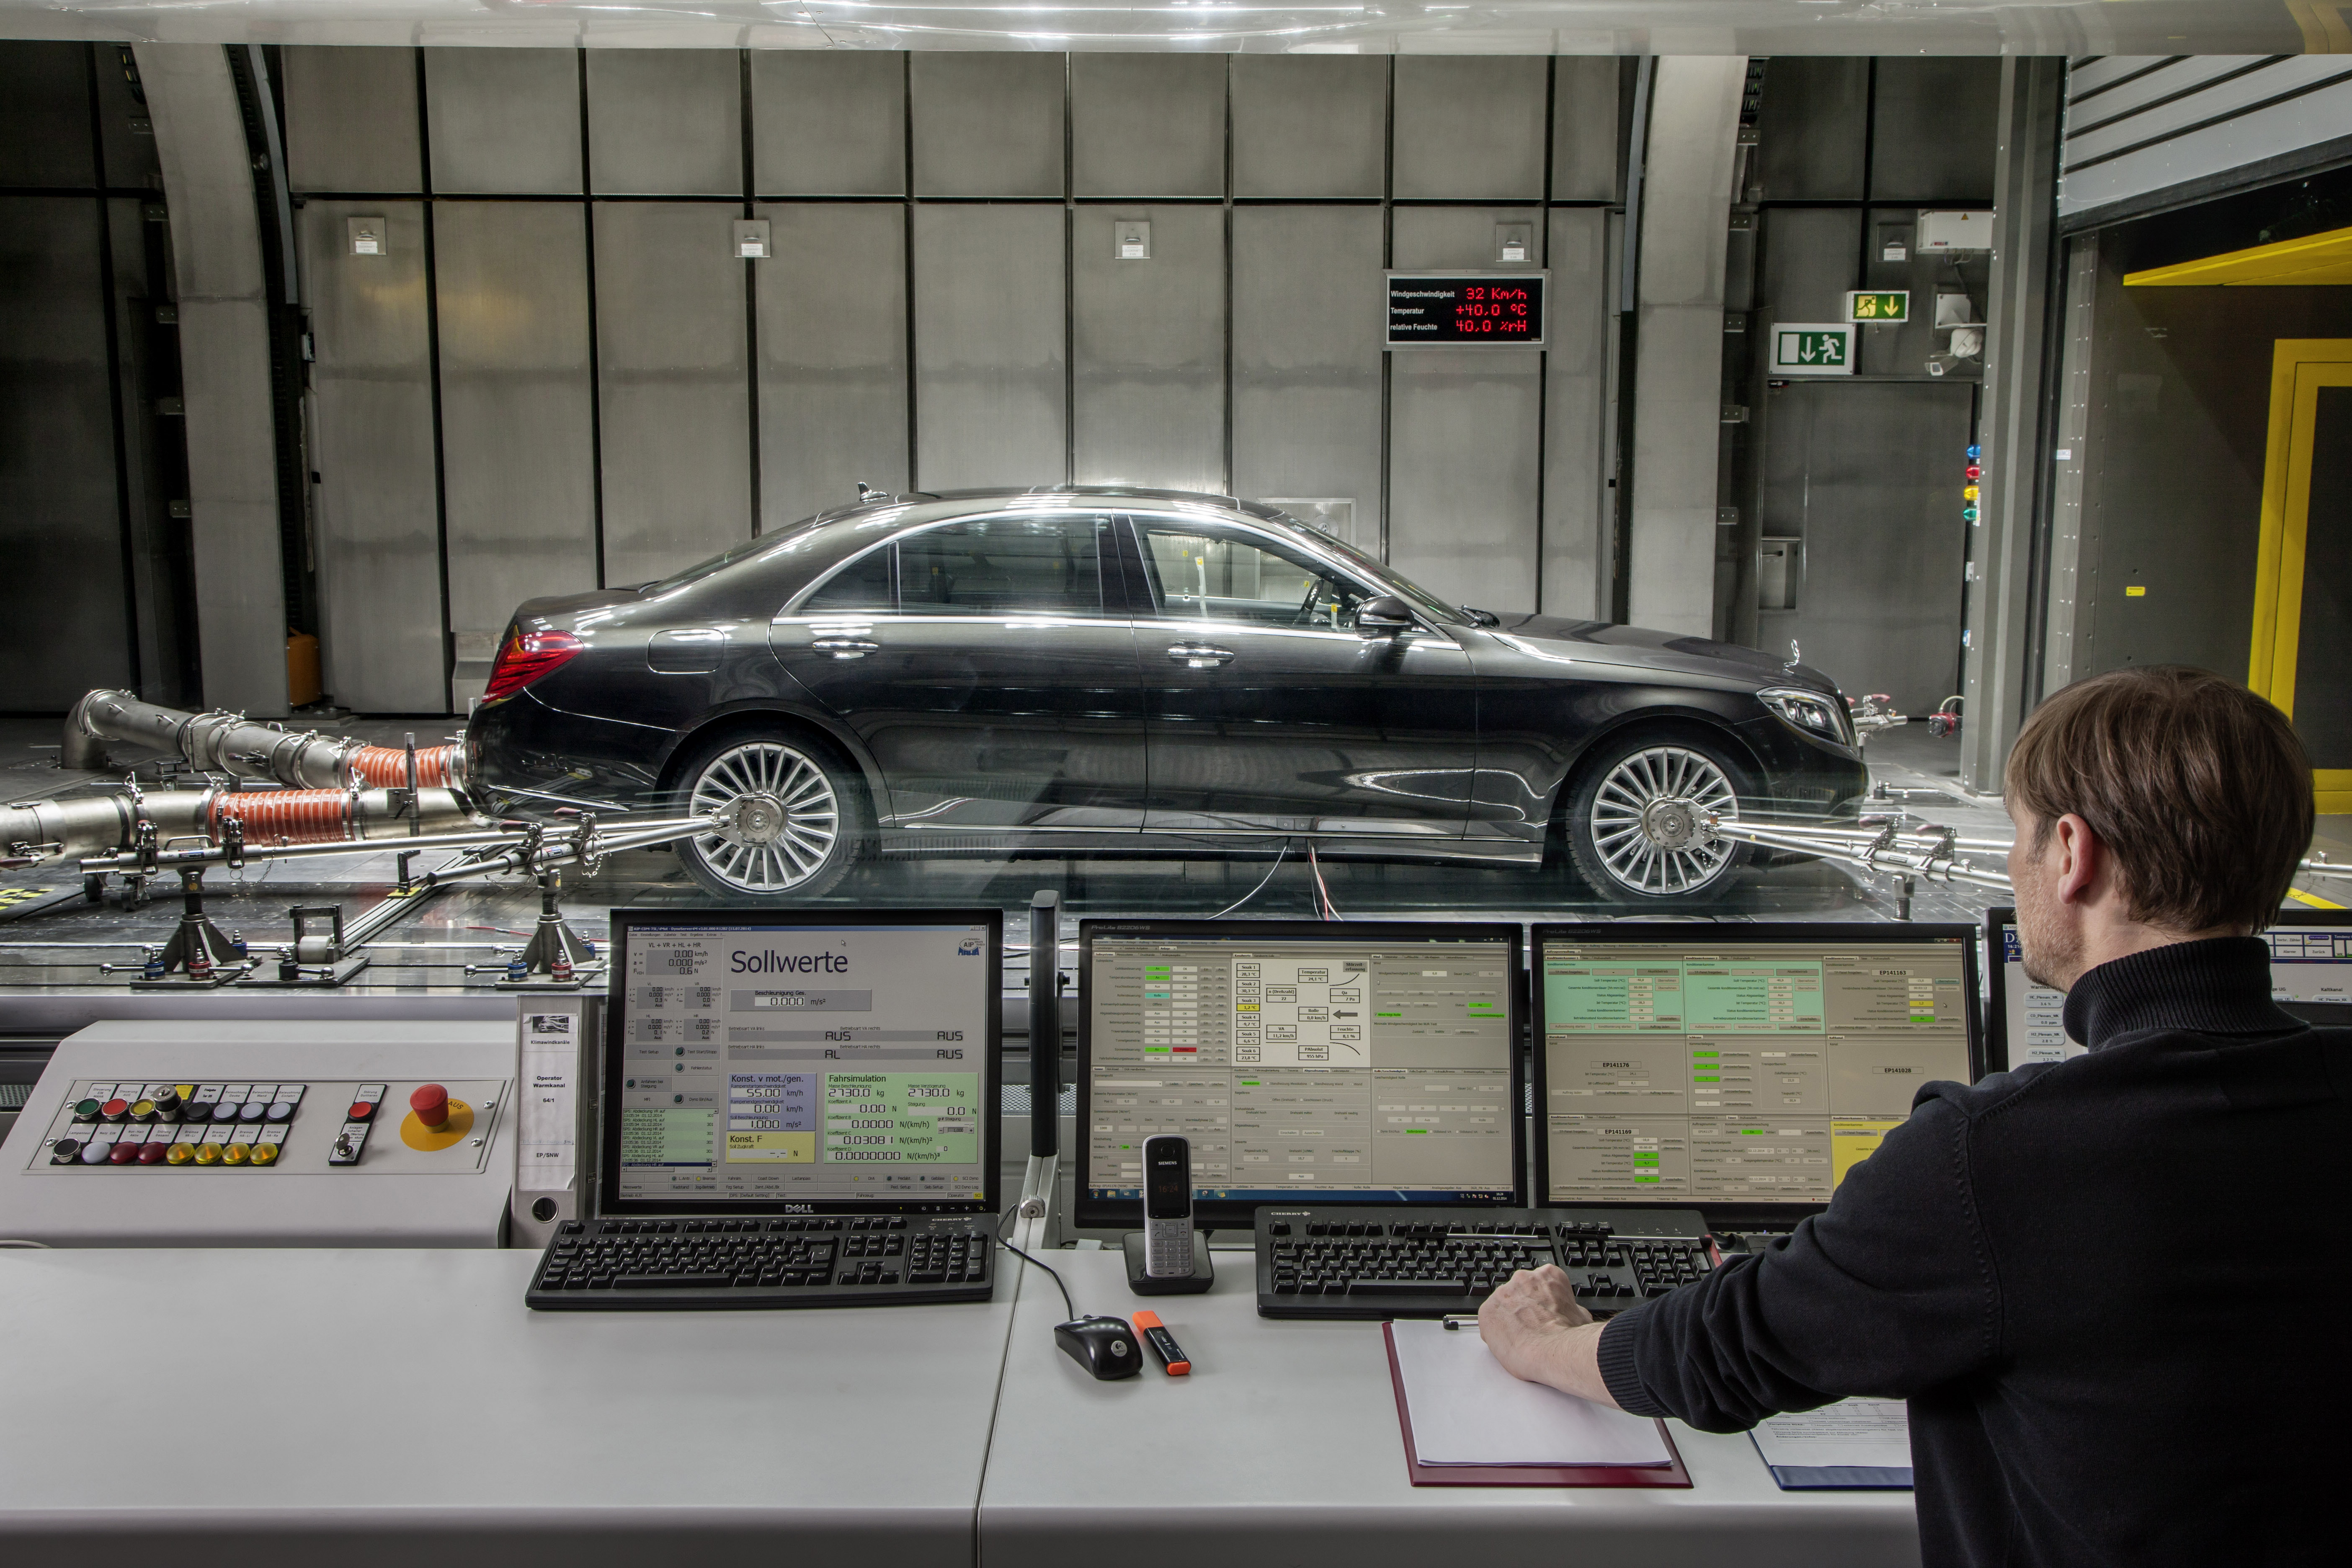 Co2 air conditioning systems coming to mercedes benz cars for Mercedes benz air conditioning problems